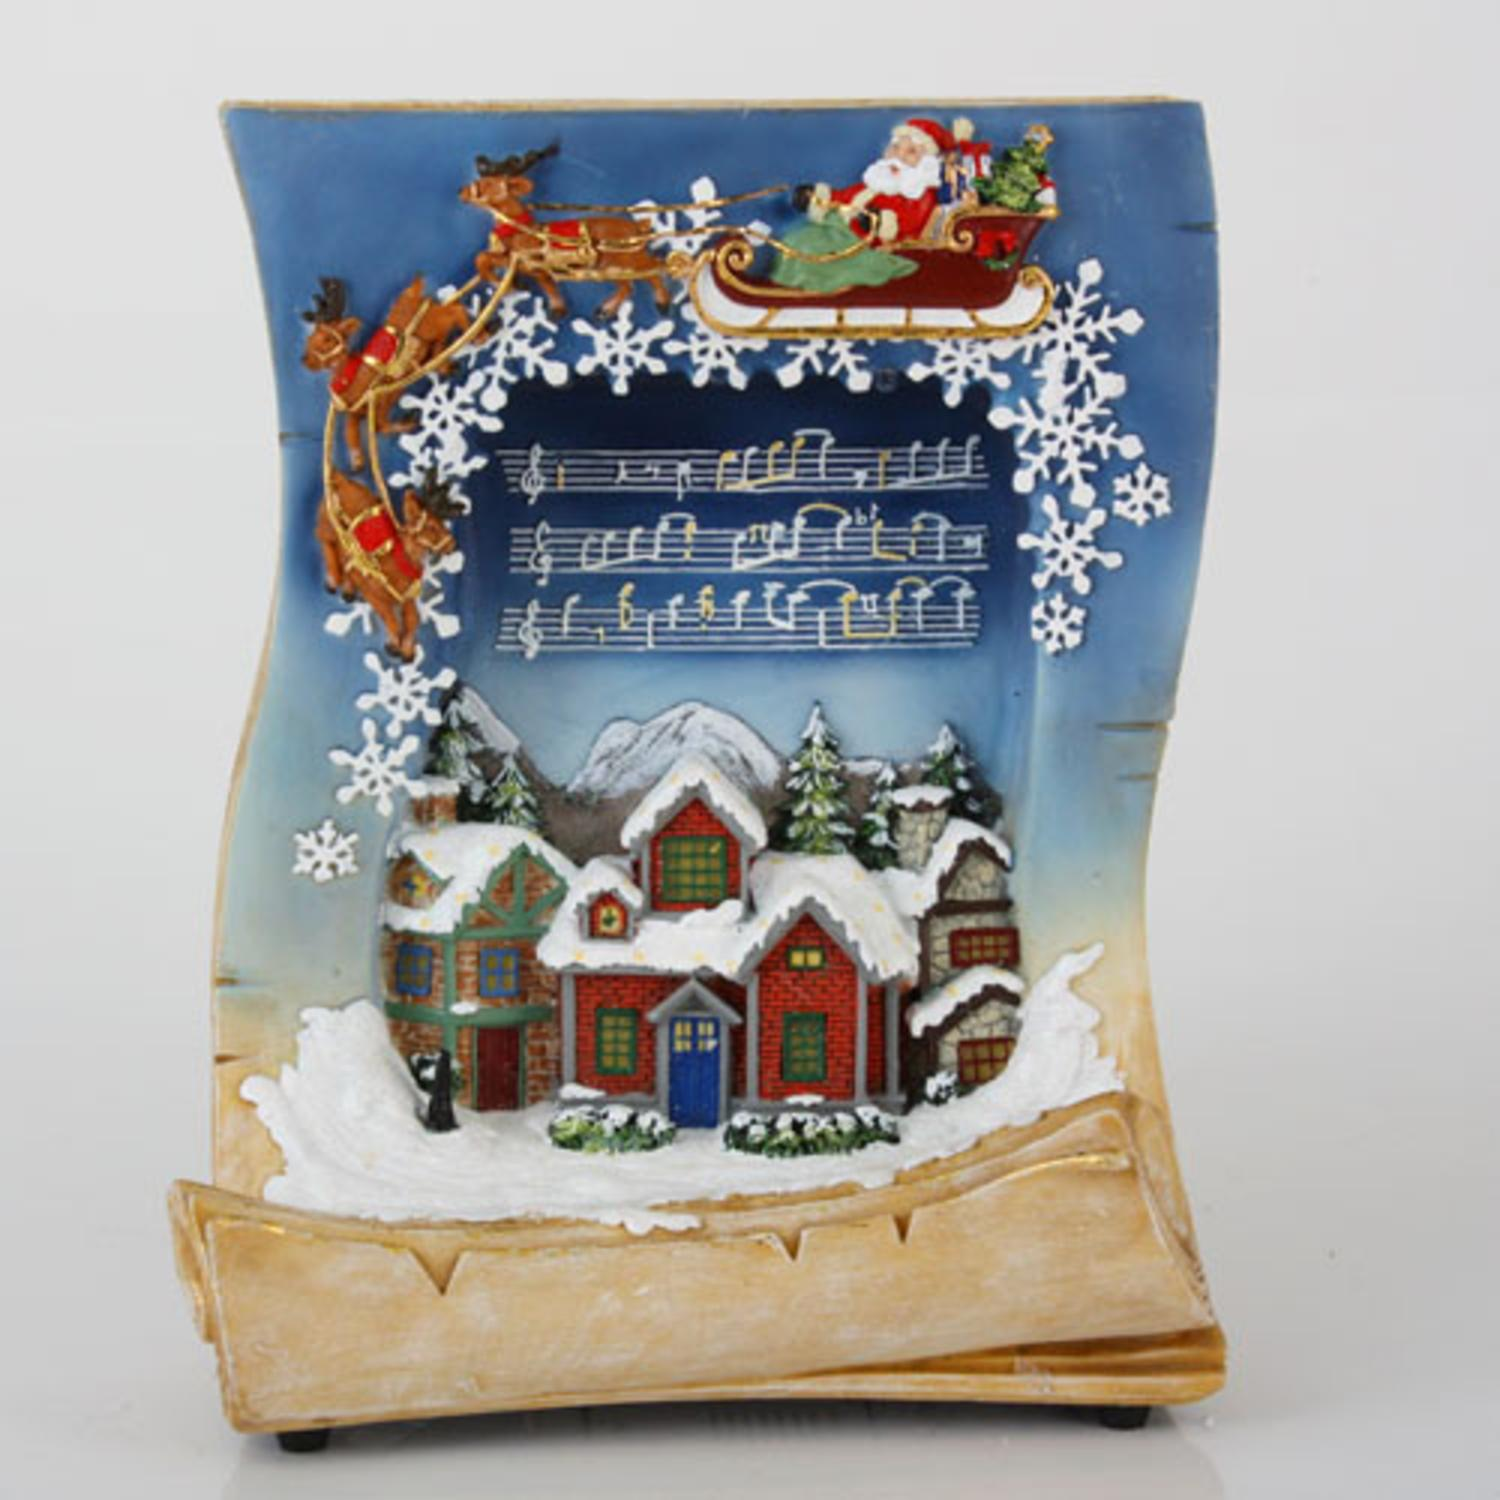 "10.5"" LED Lighted Musical Holiday Village Book Christmas Tabletop Decoration"